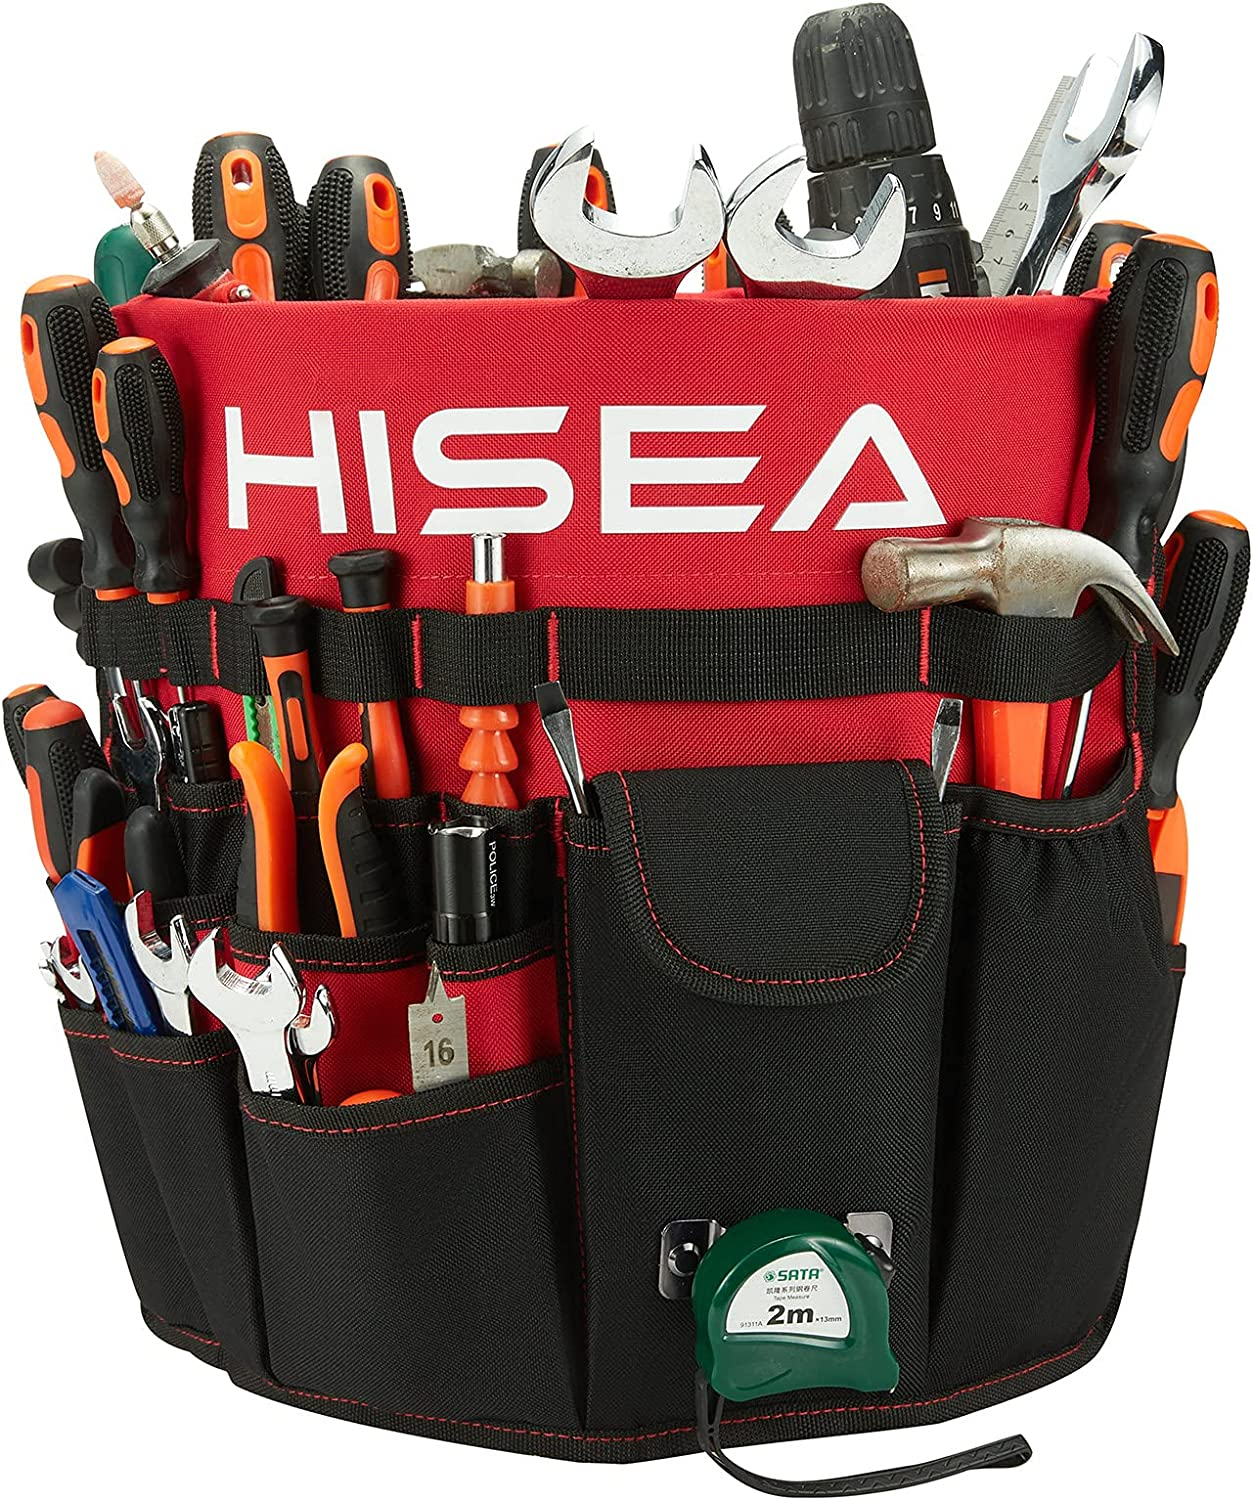 HISEA Bucket Tool Our shop OFFers the best service Organizer Garden Bag with 61 Fits Max 76% OFF Pockets